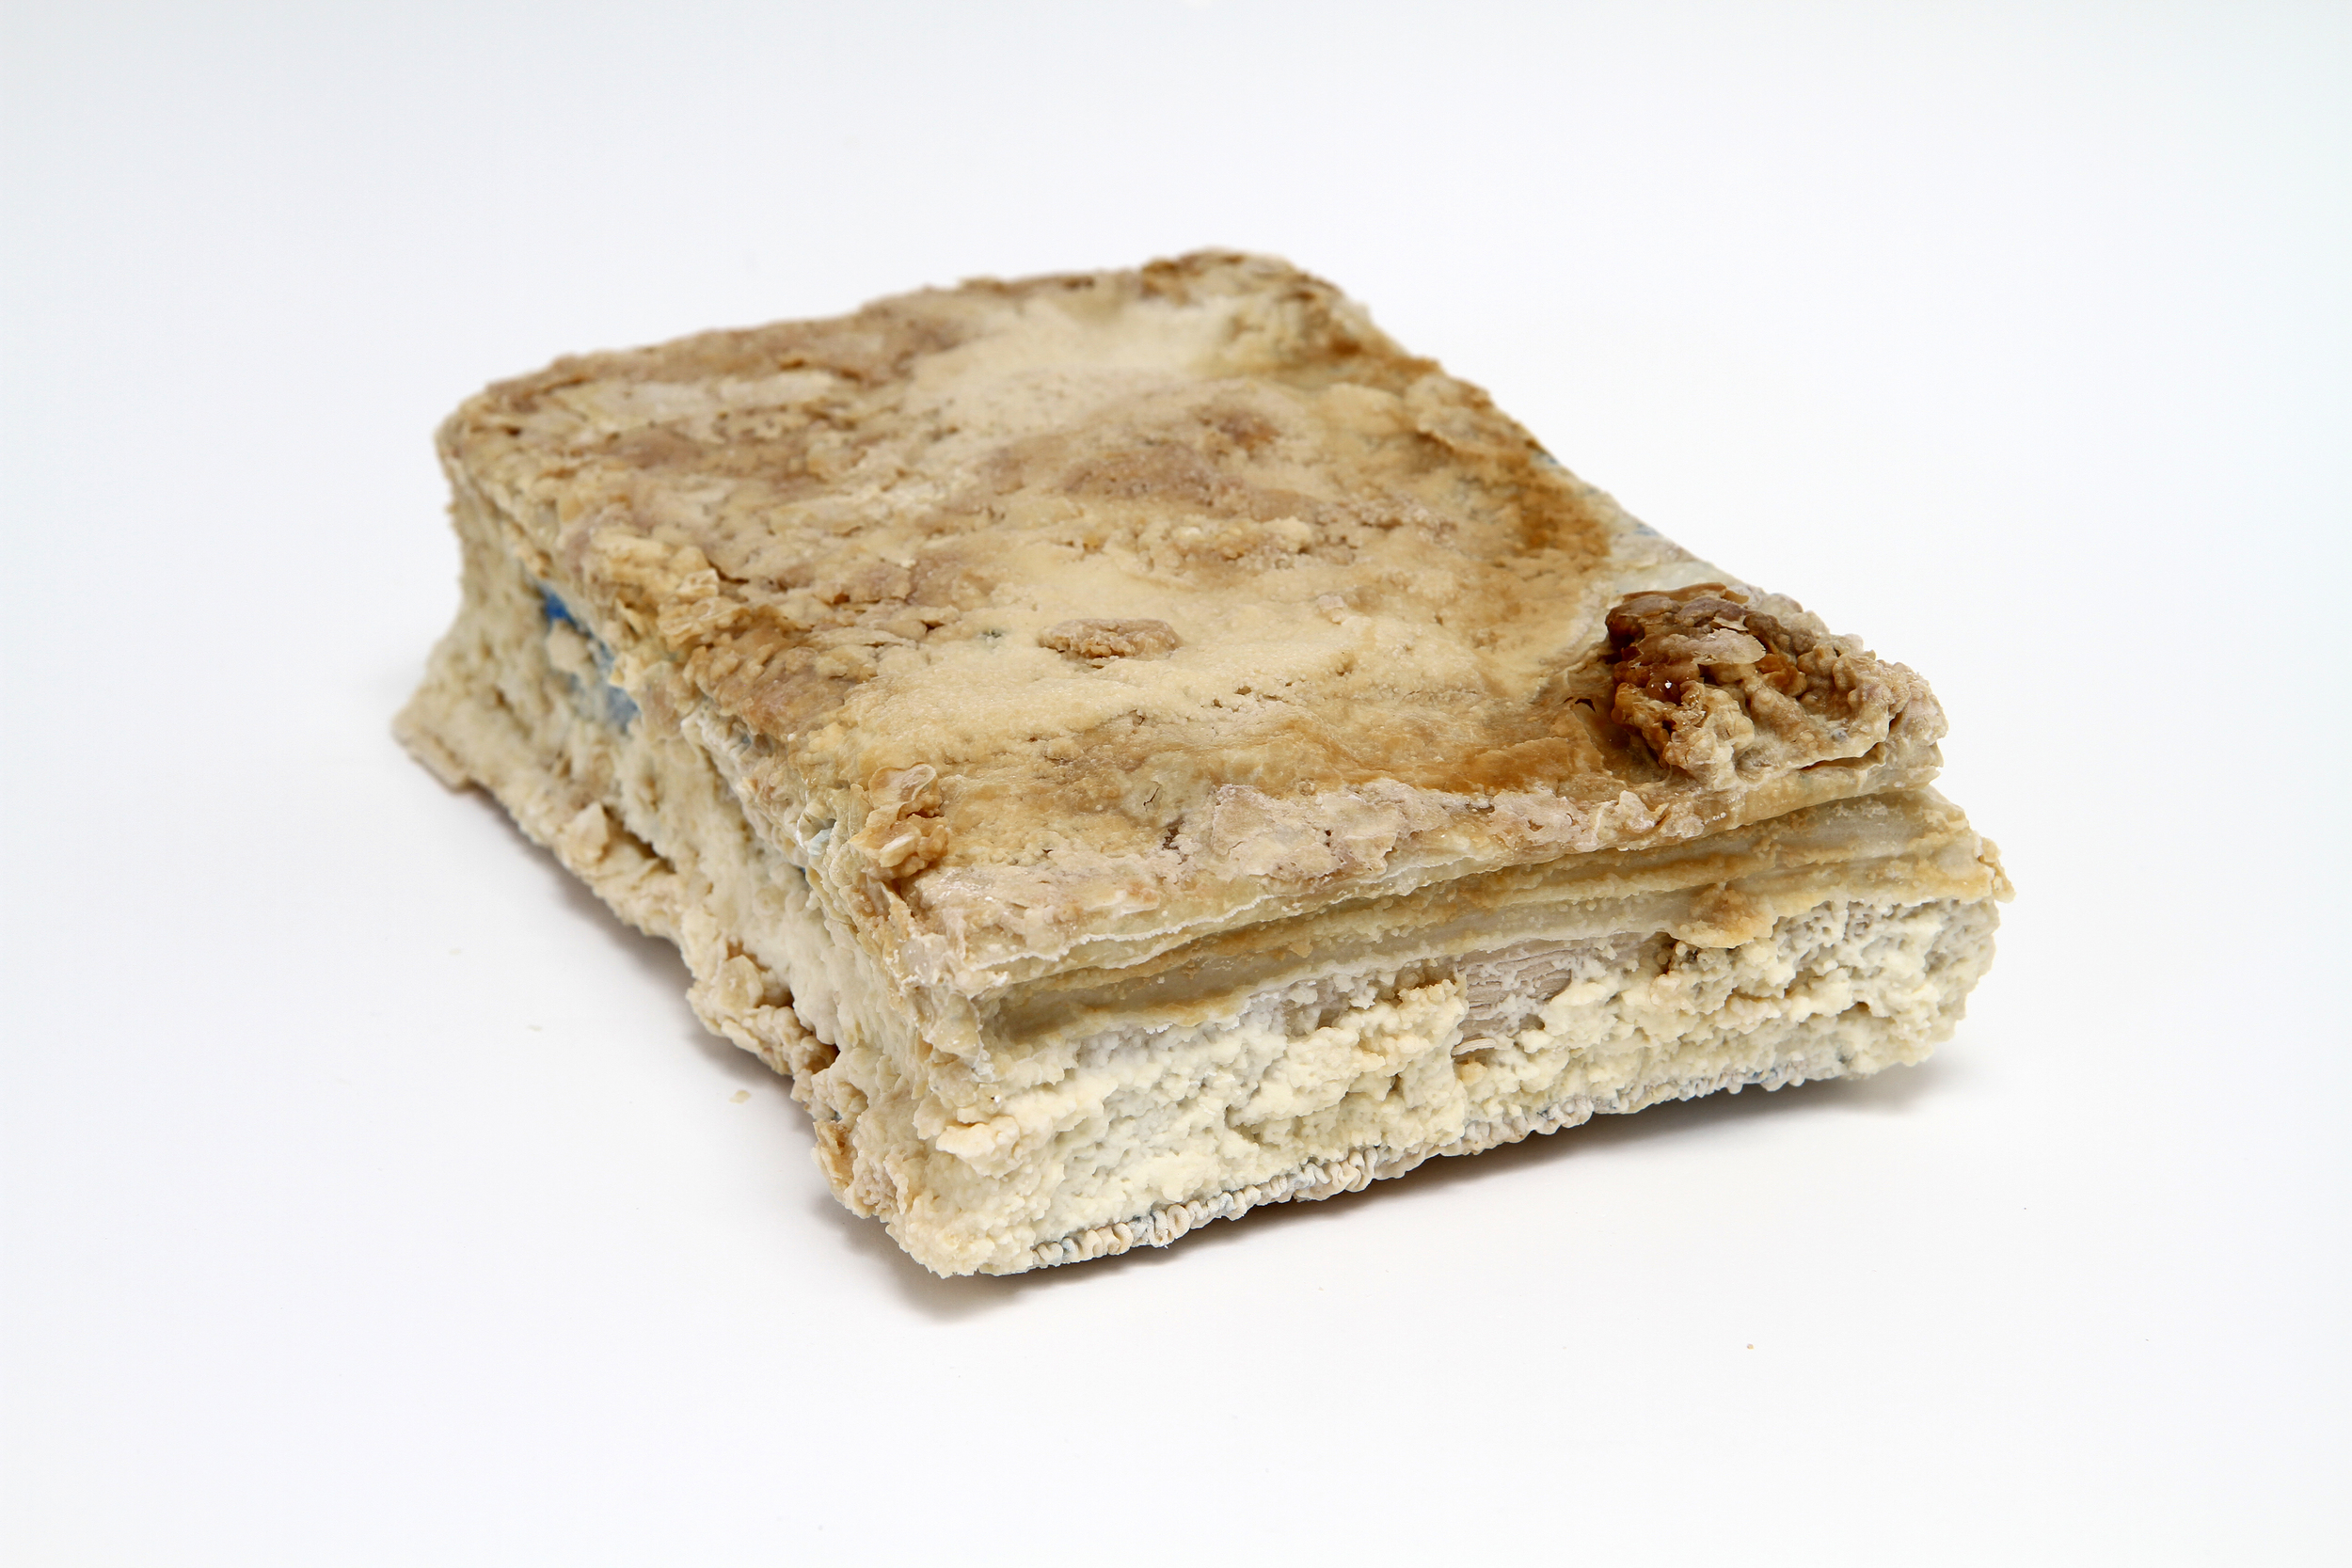 Relic (Mastering the Art of French Cooking, Julia Child, Louisette Bertholle, Simone Beck) 2012  found book, monosodium glutamate (MSG), epoxy 8 x 2 x 11 inches